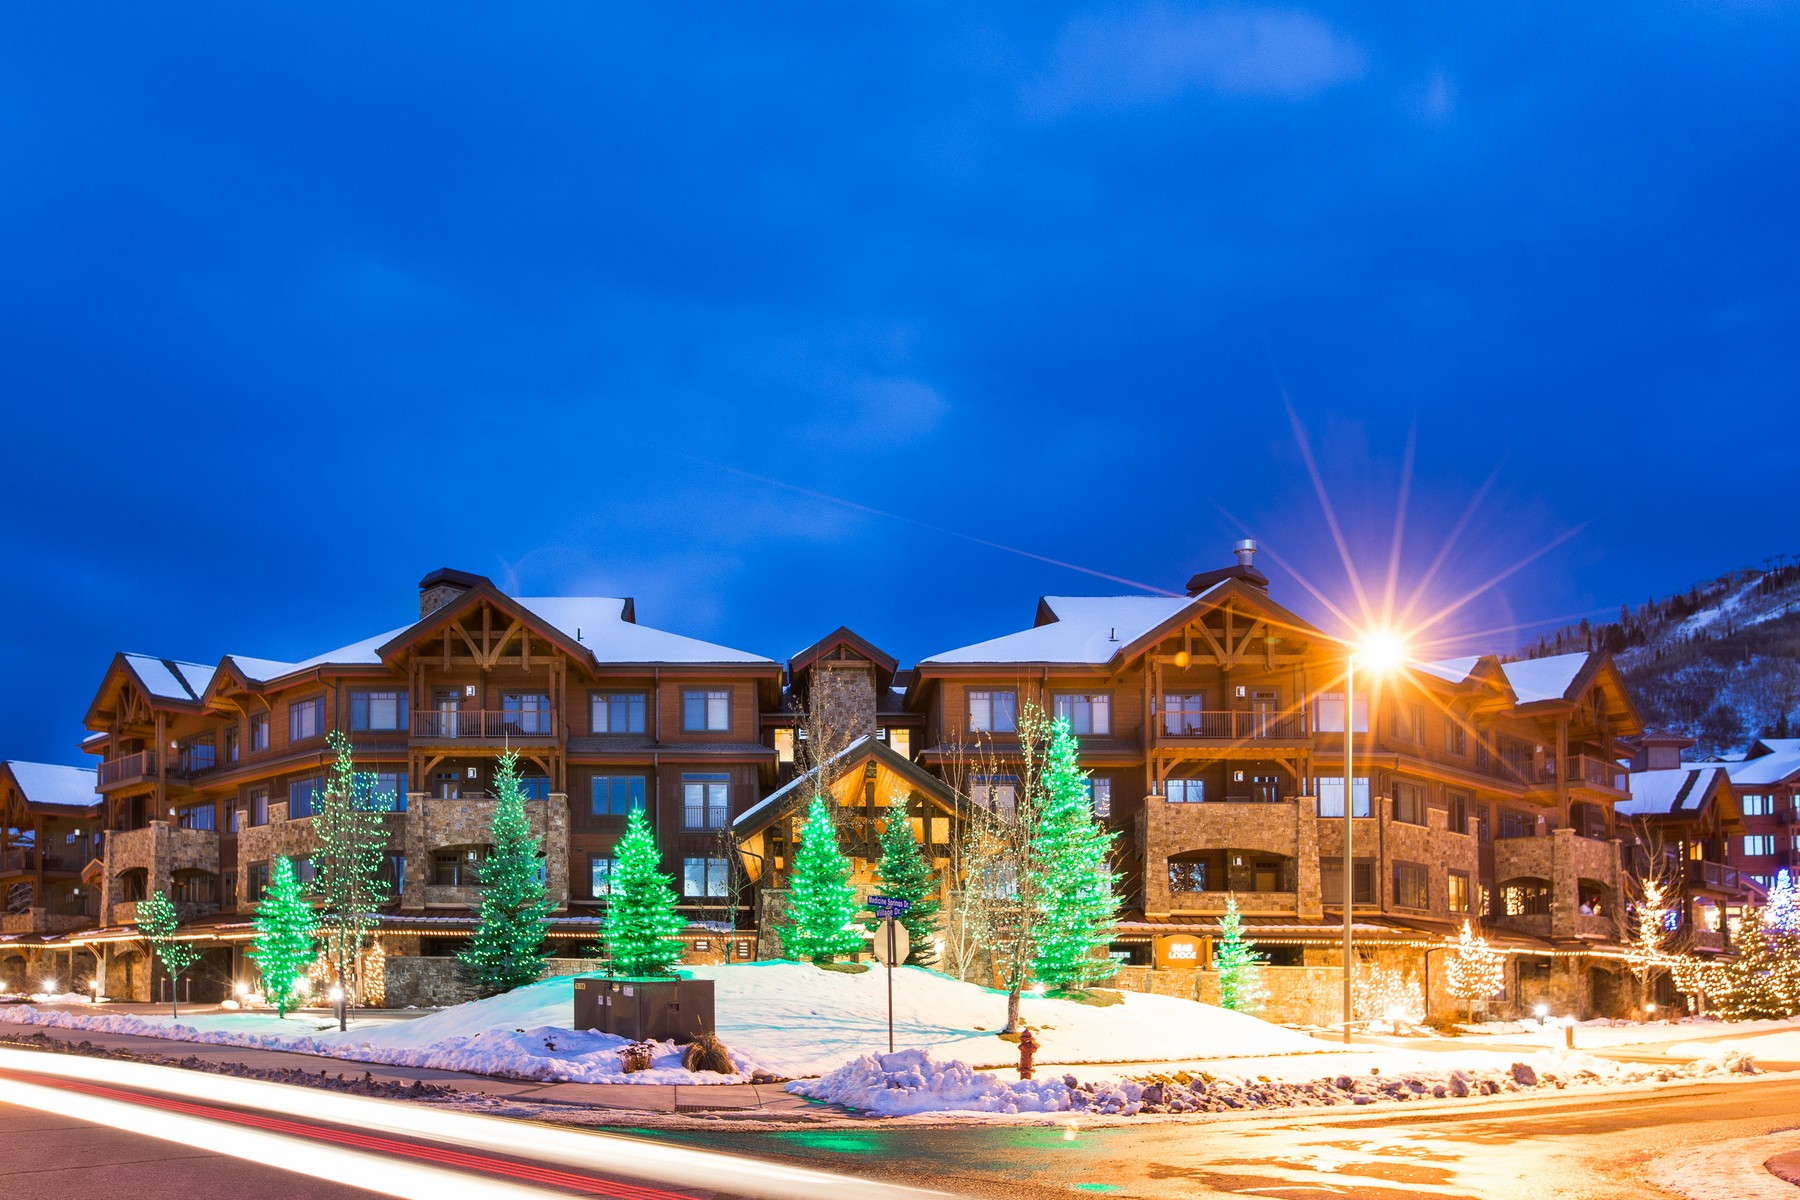 Condominium for Sale at Bear Lodge at Trappeurs Crossing 1750 Medicine Springs Drive 6306 Steamboat Springs, Colorado 80487 United States